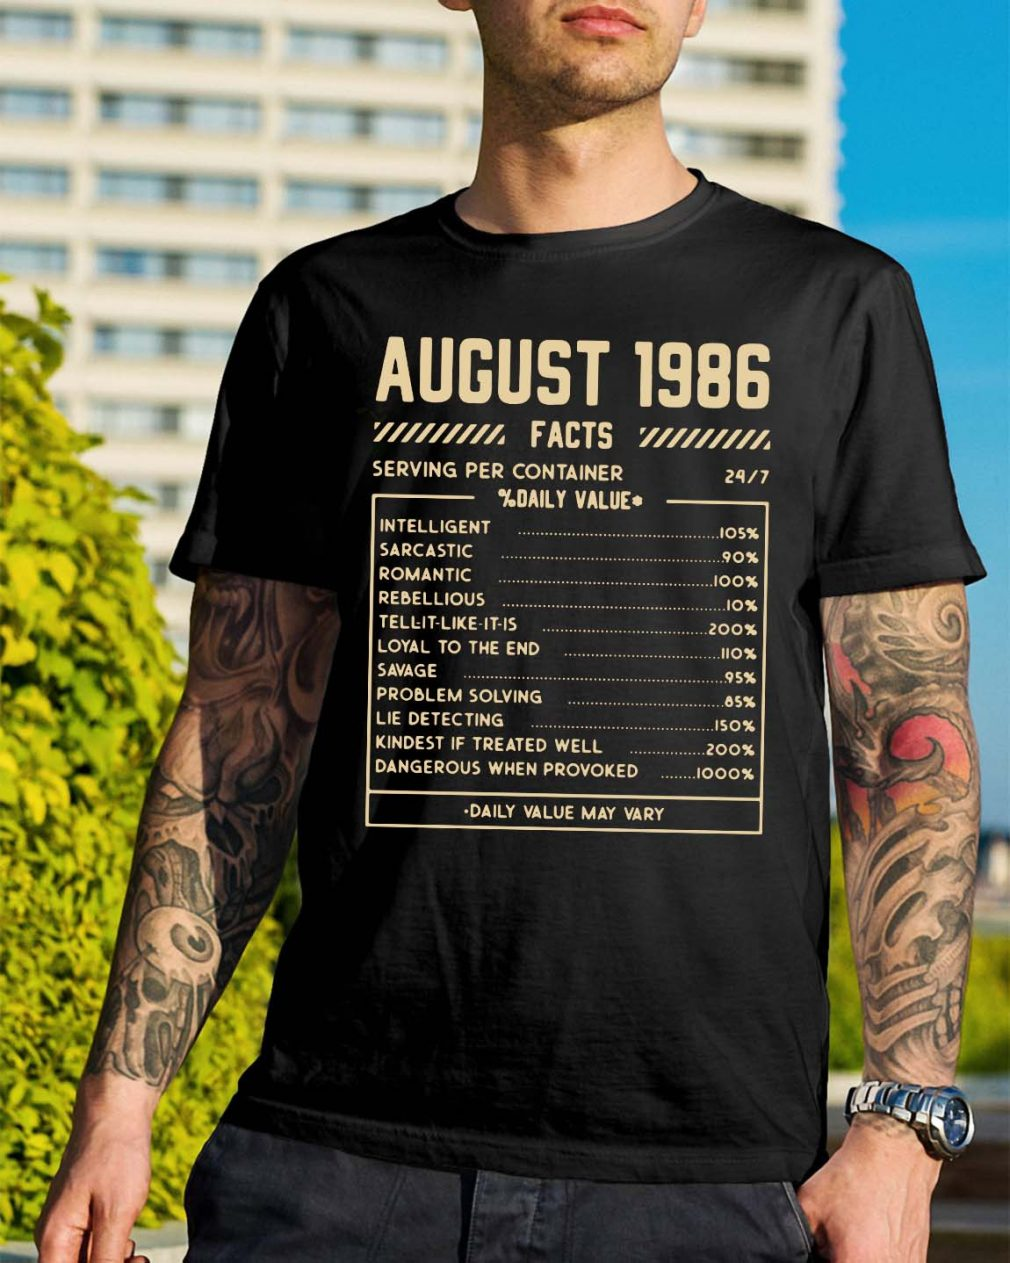 August 1986 facts serving per container % daily value shirt